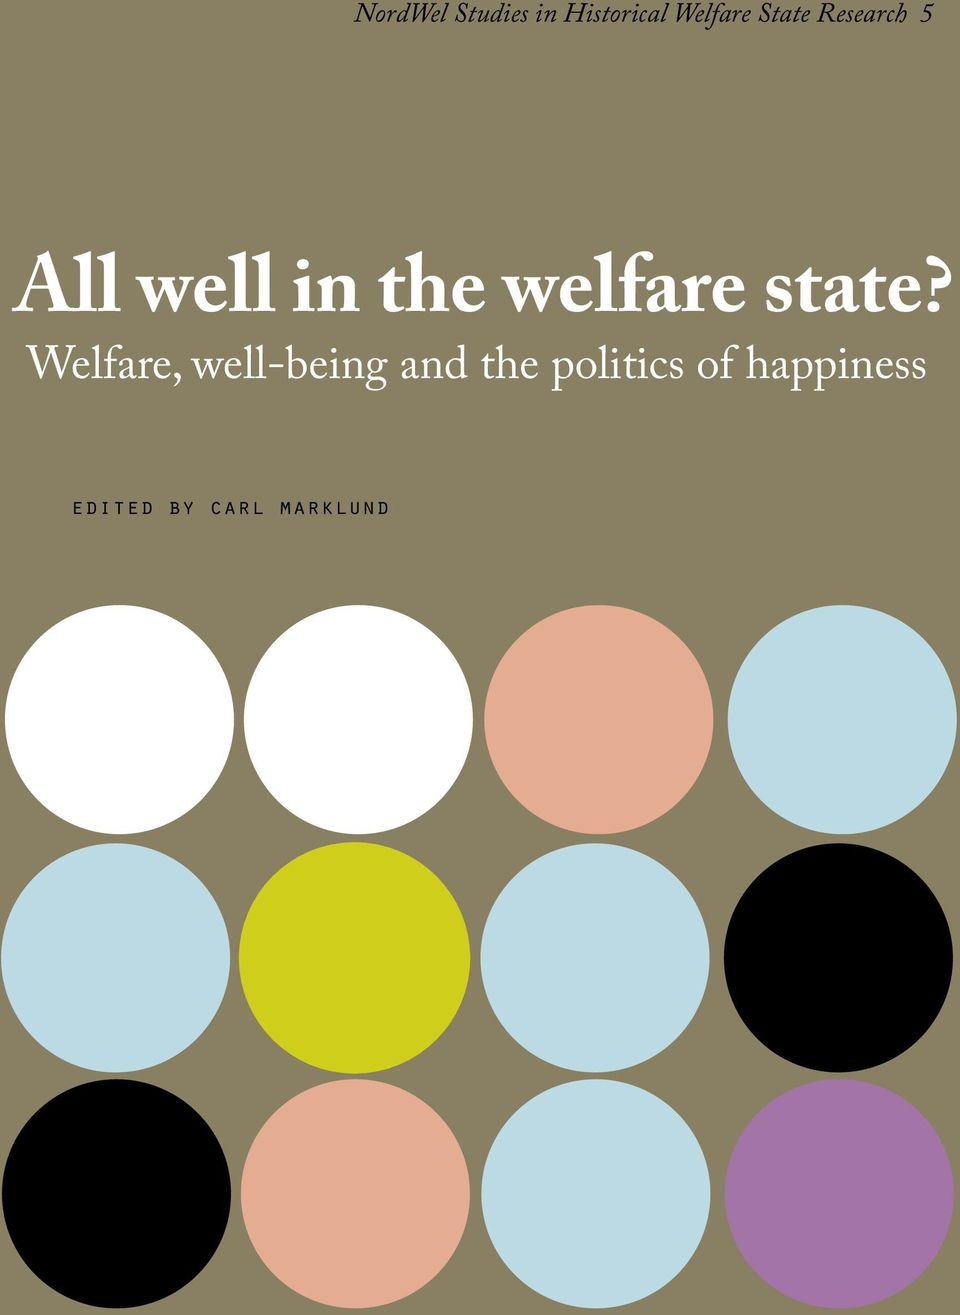 ALL WELL IN THE WELFARE STATE?